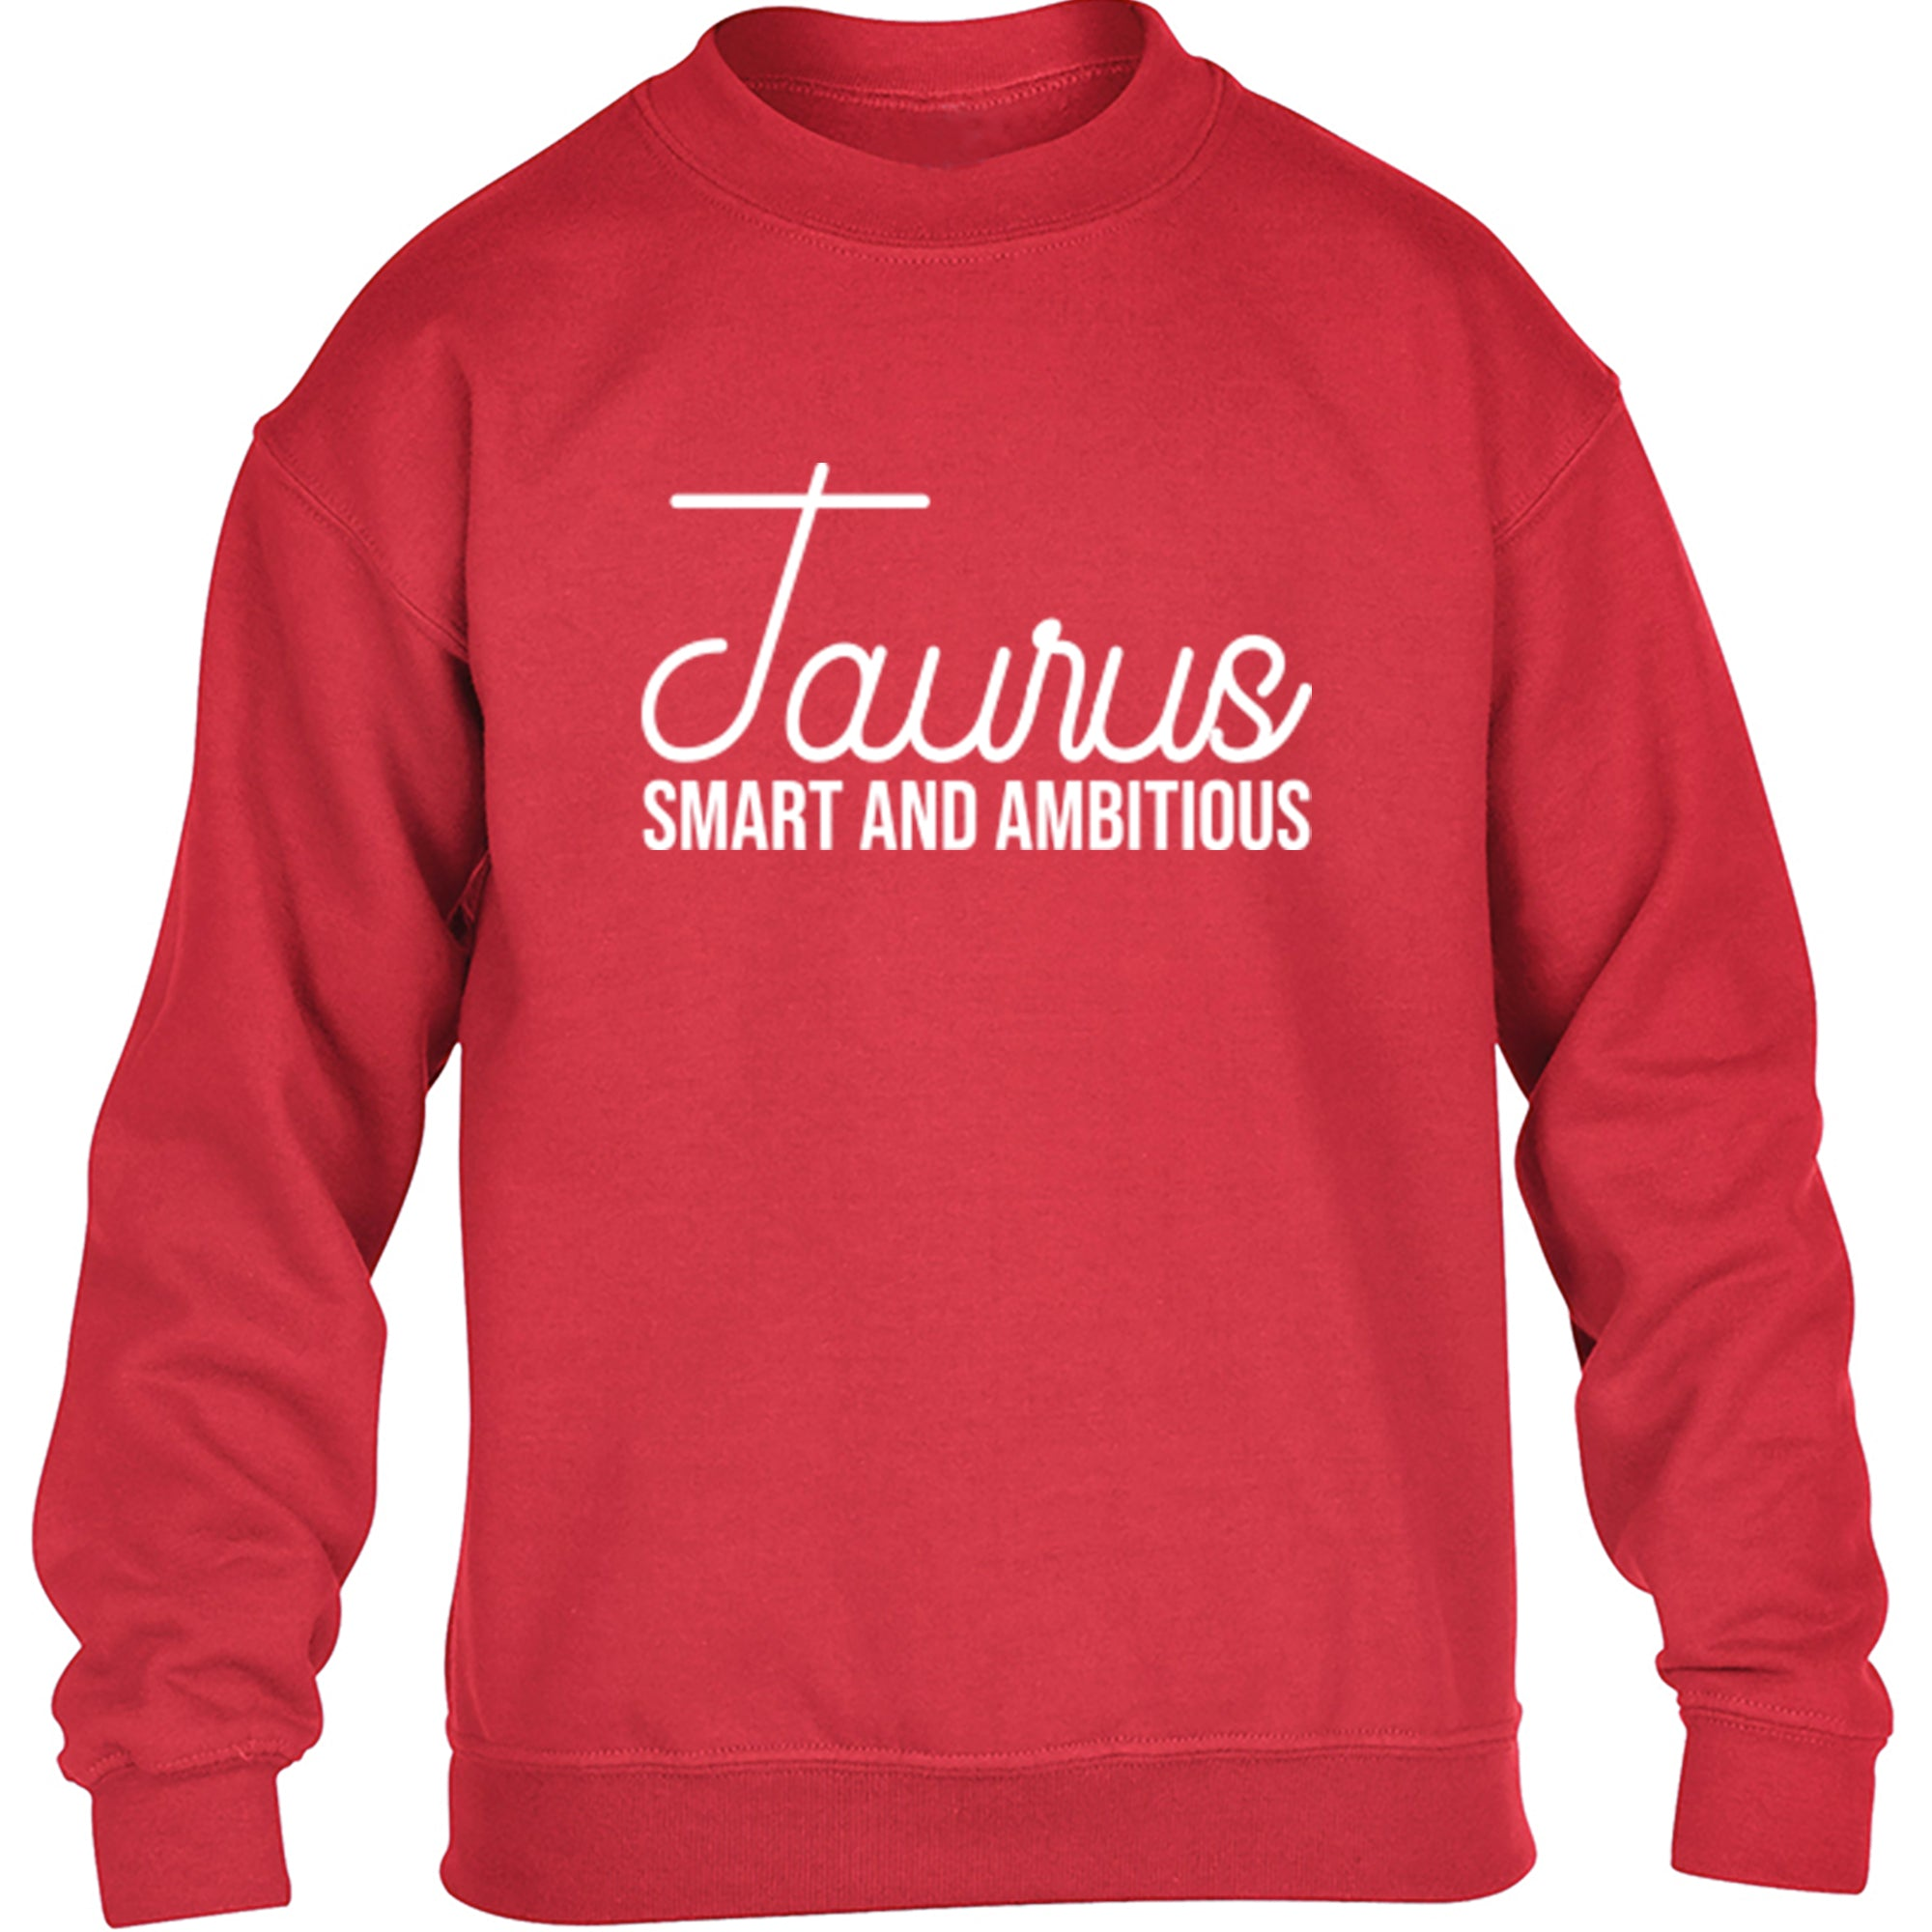 Taurus, Smart And Ambitious Childrens Ages 3/4-12/14 Unisex Jumper S0436 - Illustrated Identity Ltd.